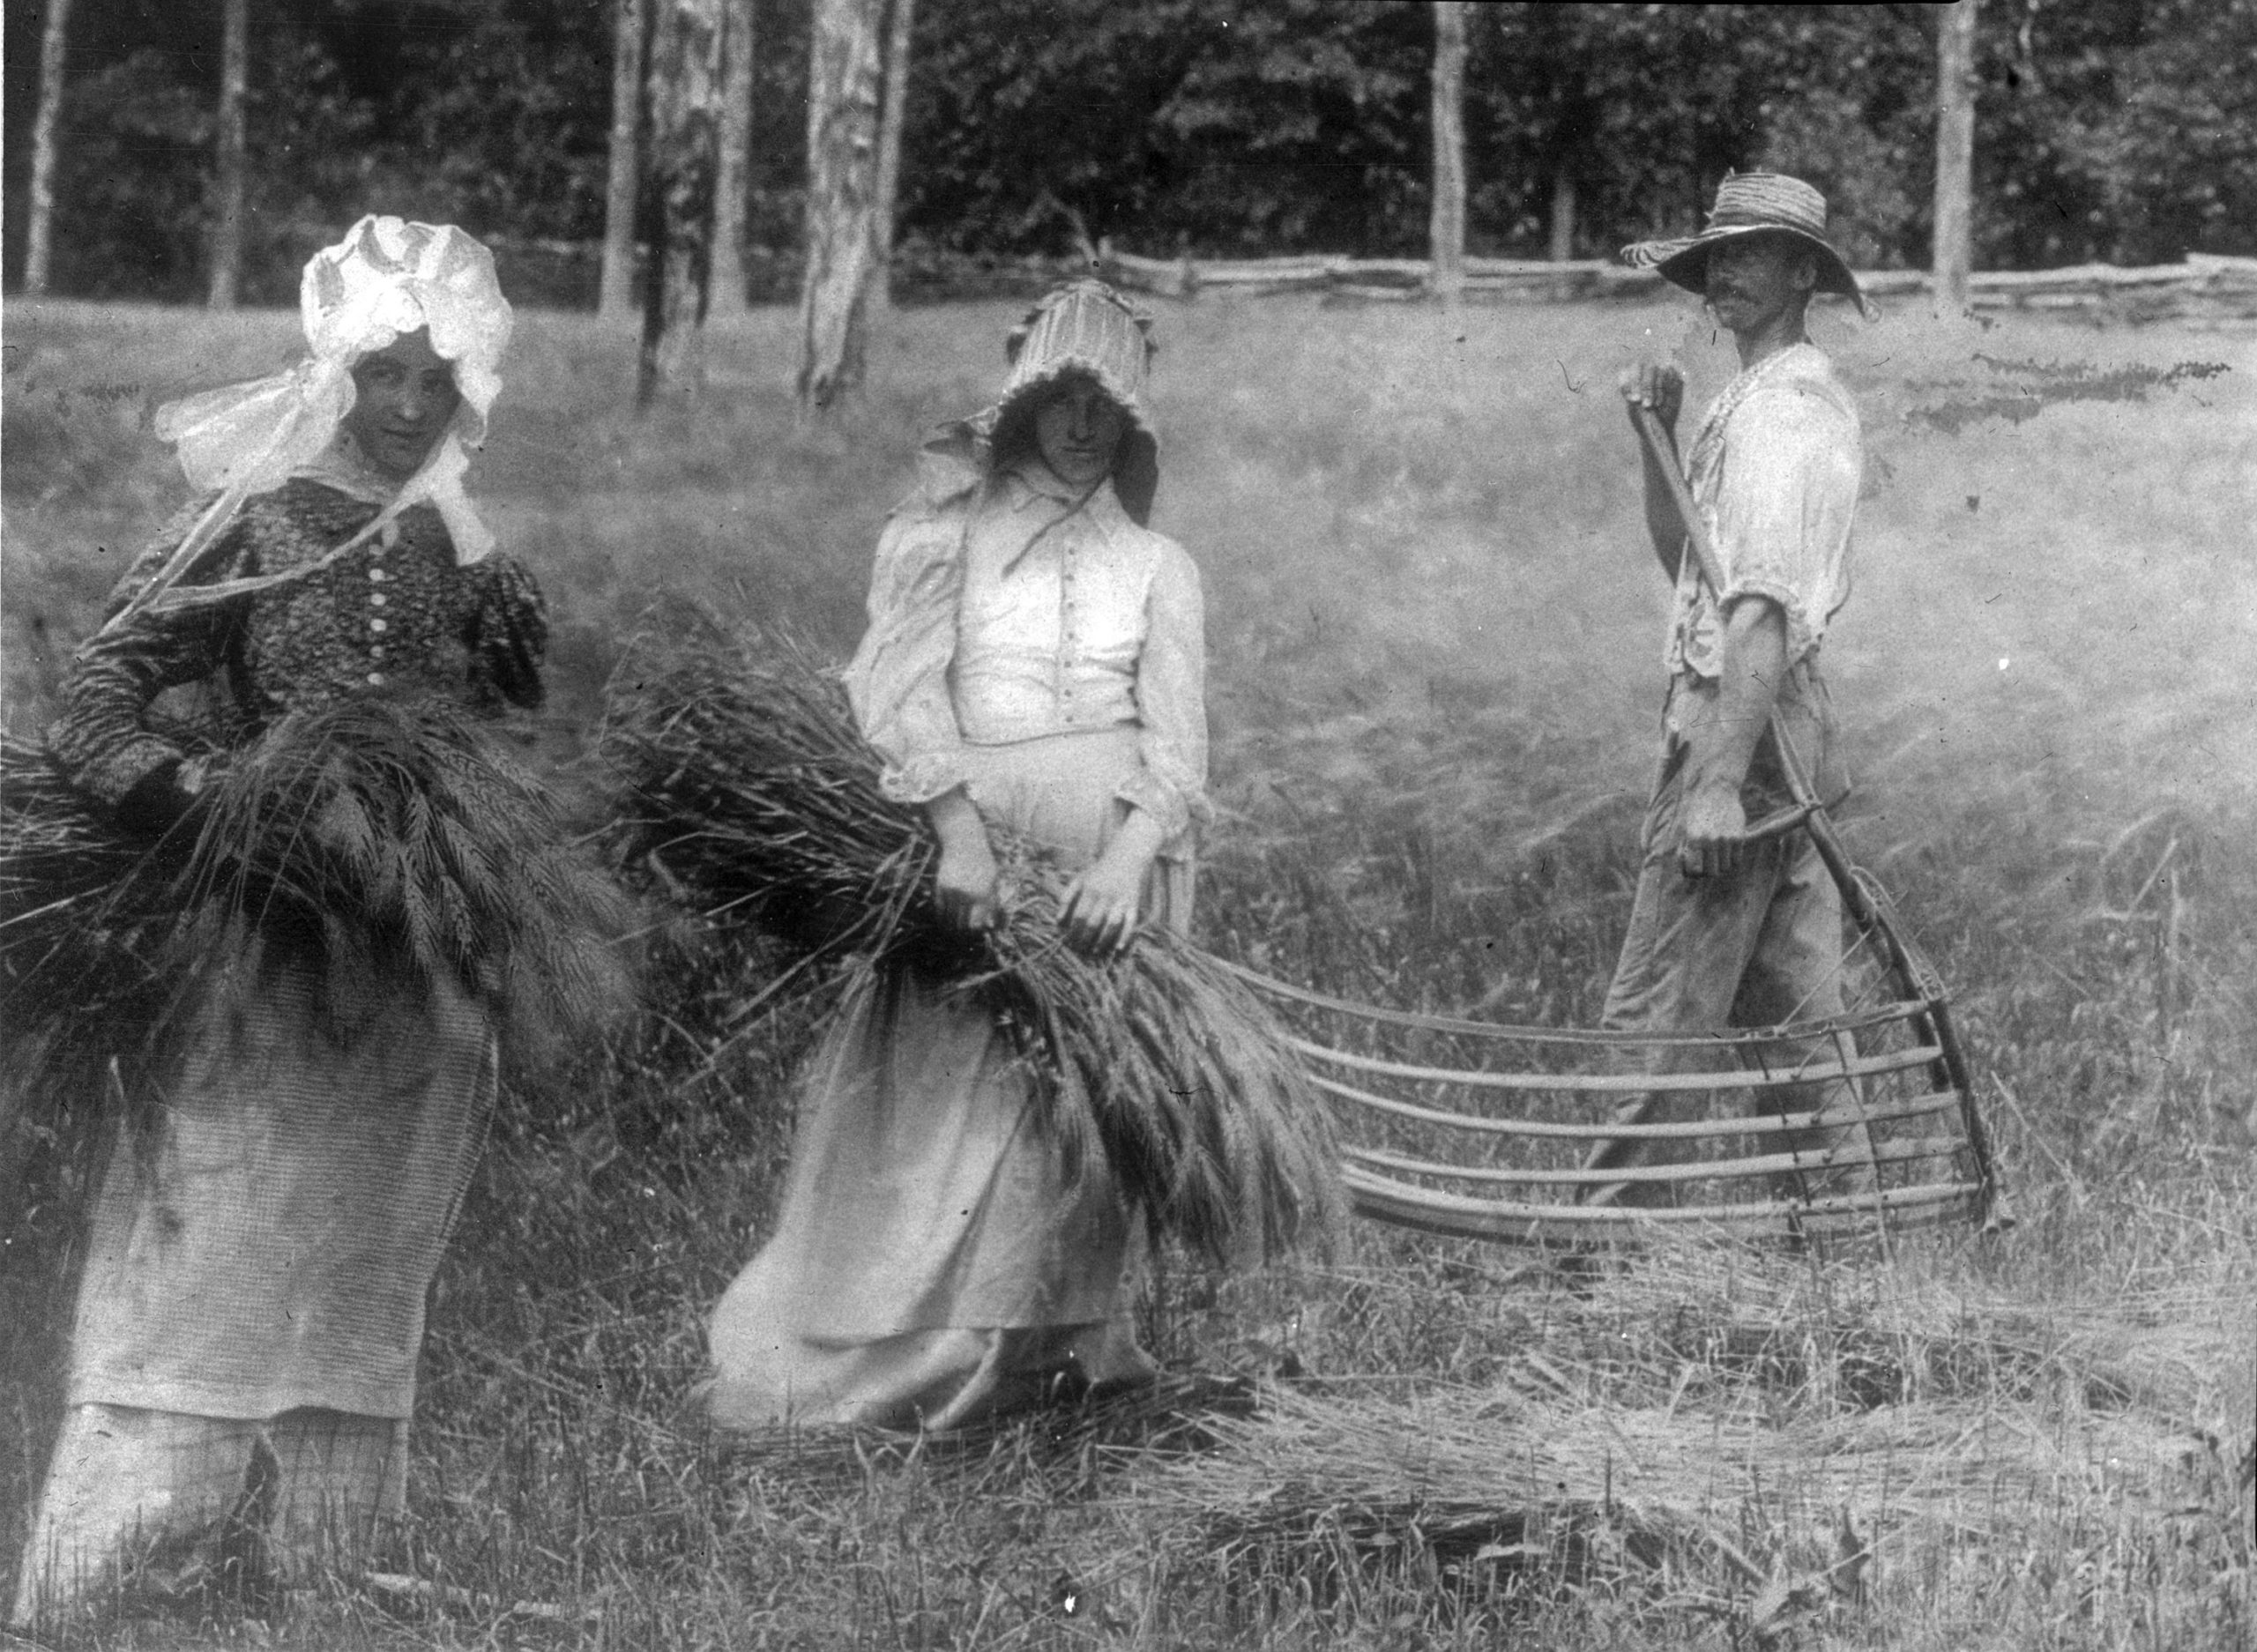 Two women and a man harvest grain with a hand machine.